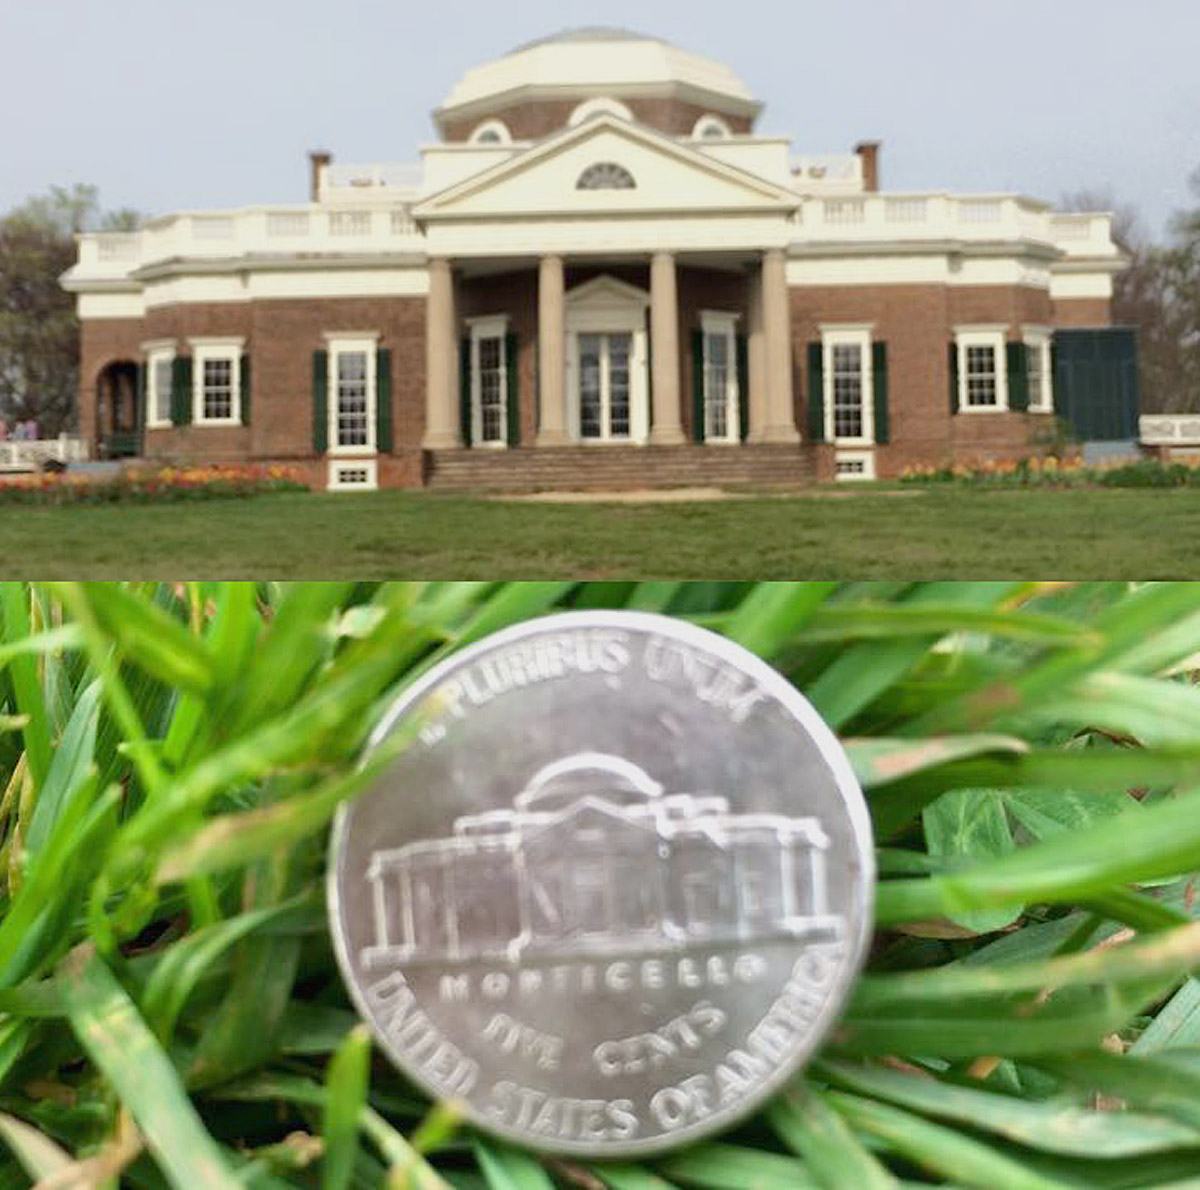 Monticello in real life and on a Nickel